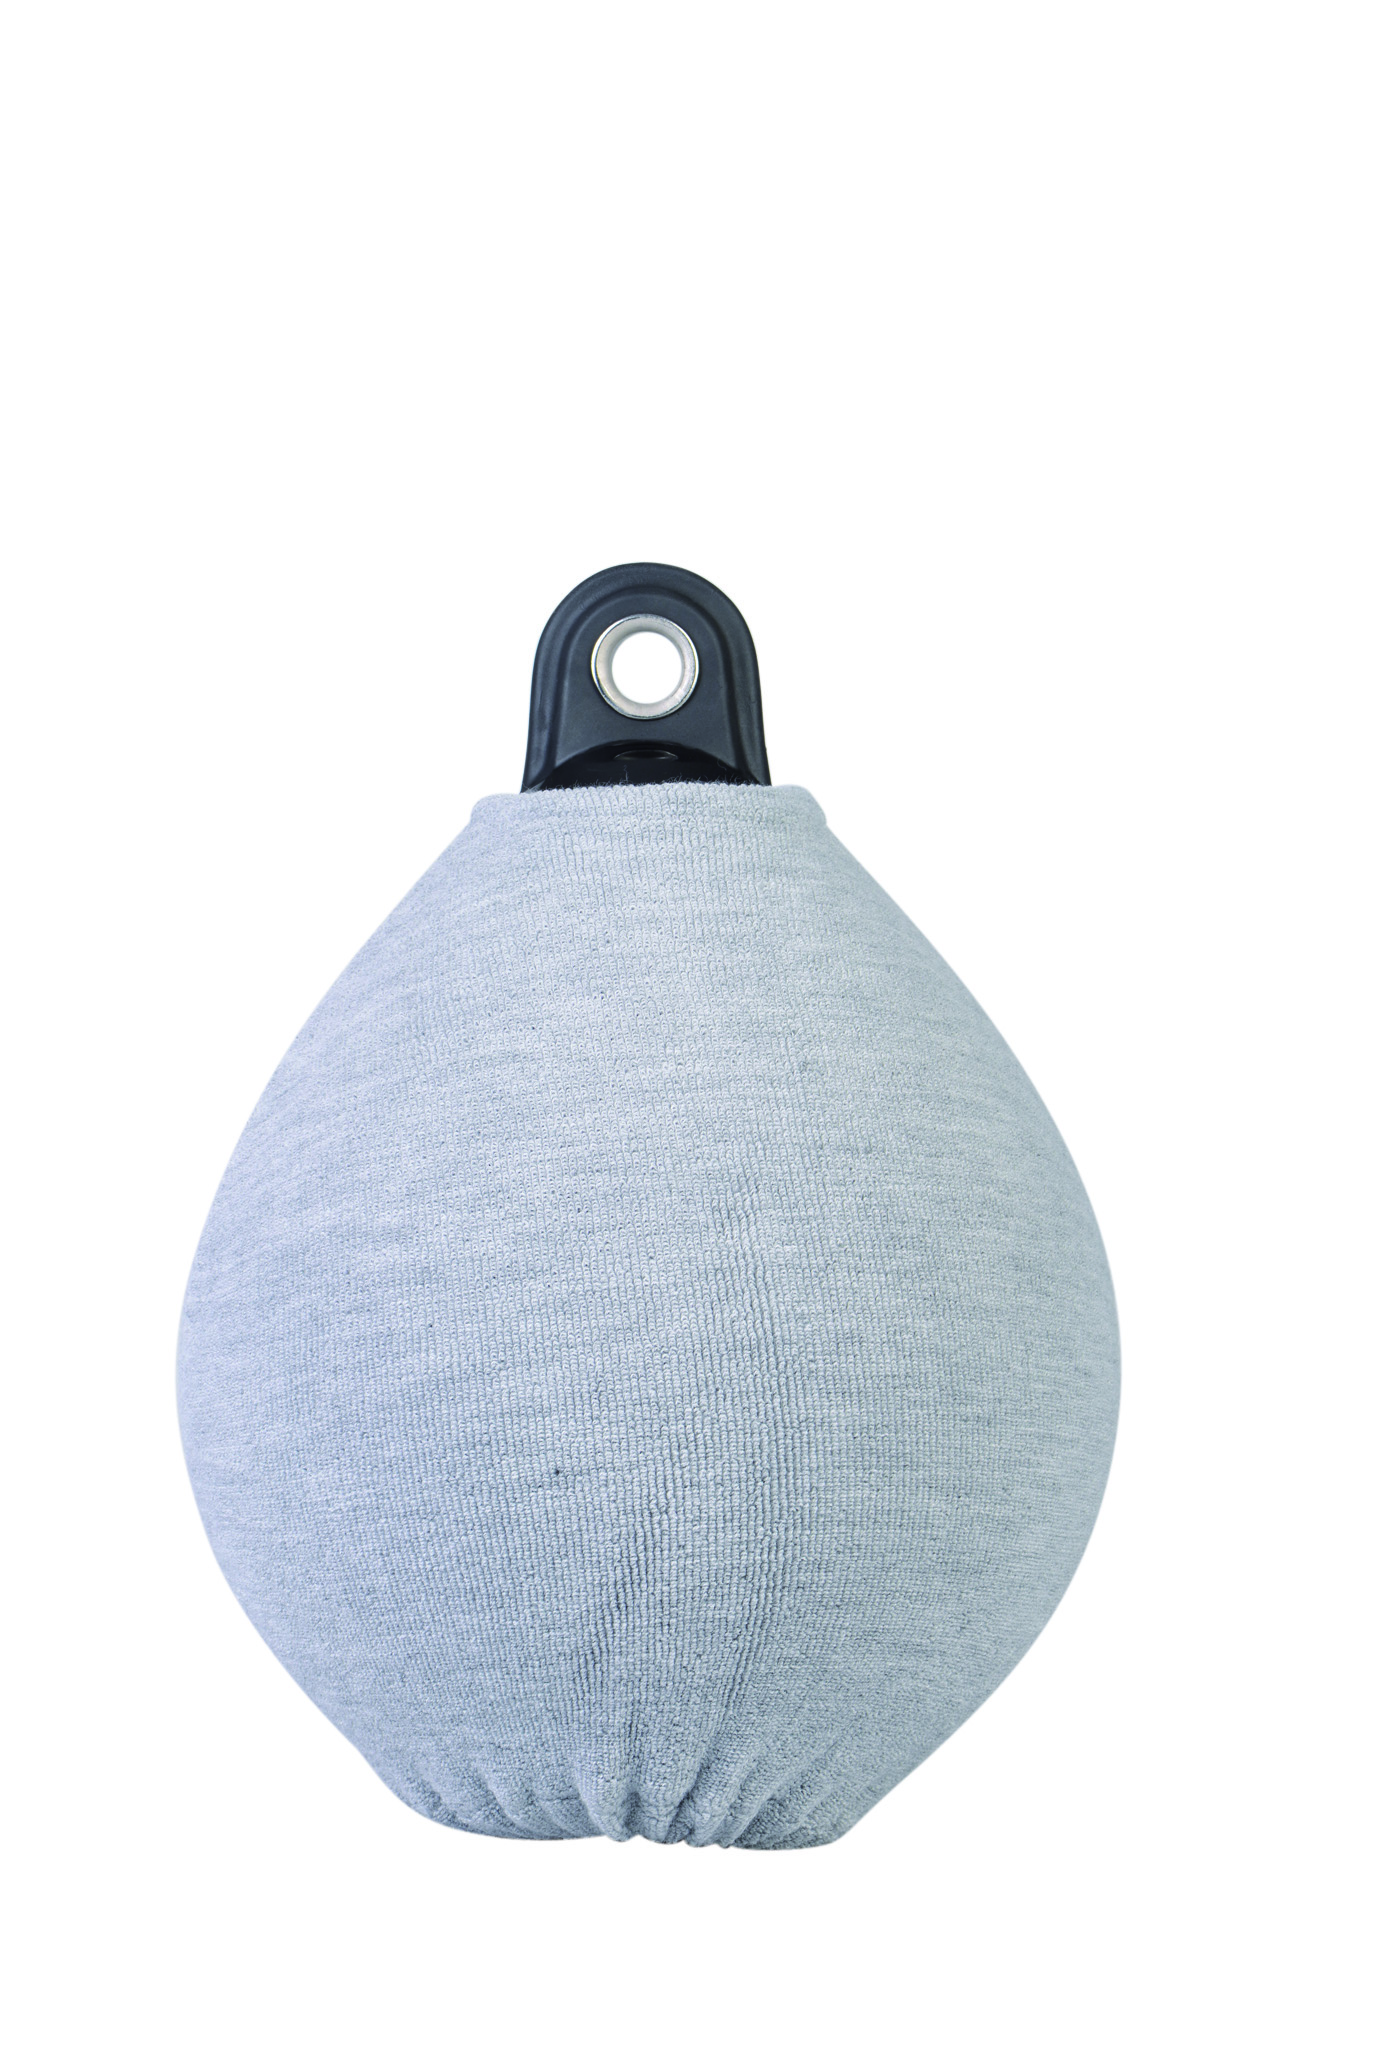 Talamex Buoy Cover 45 Grey